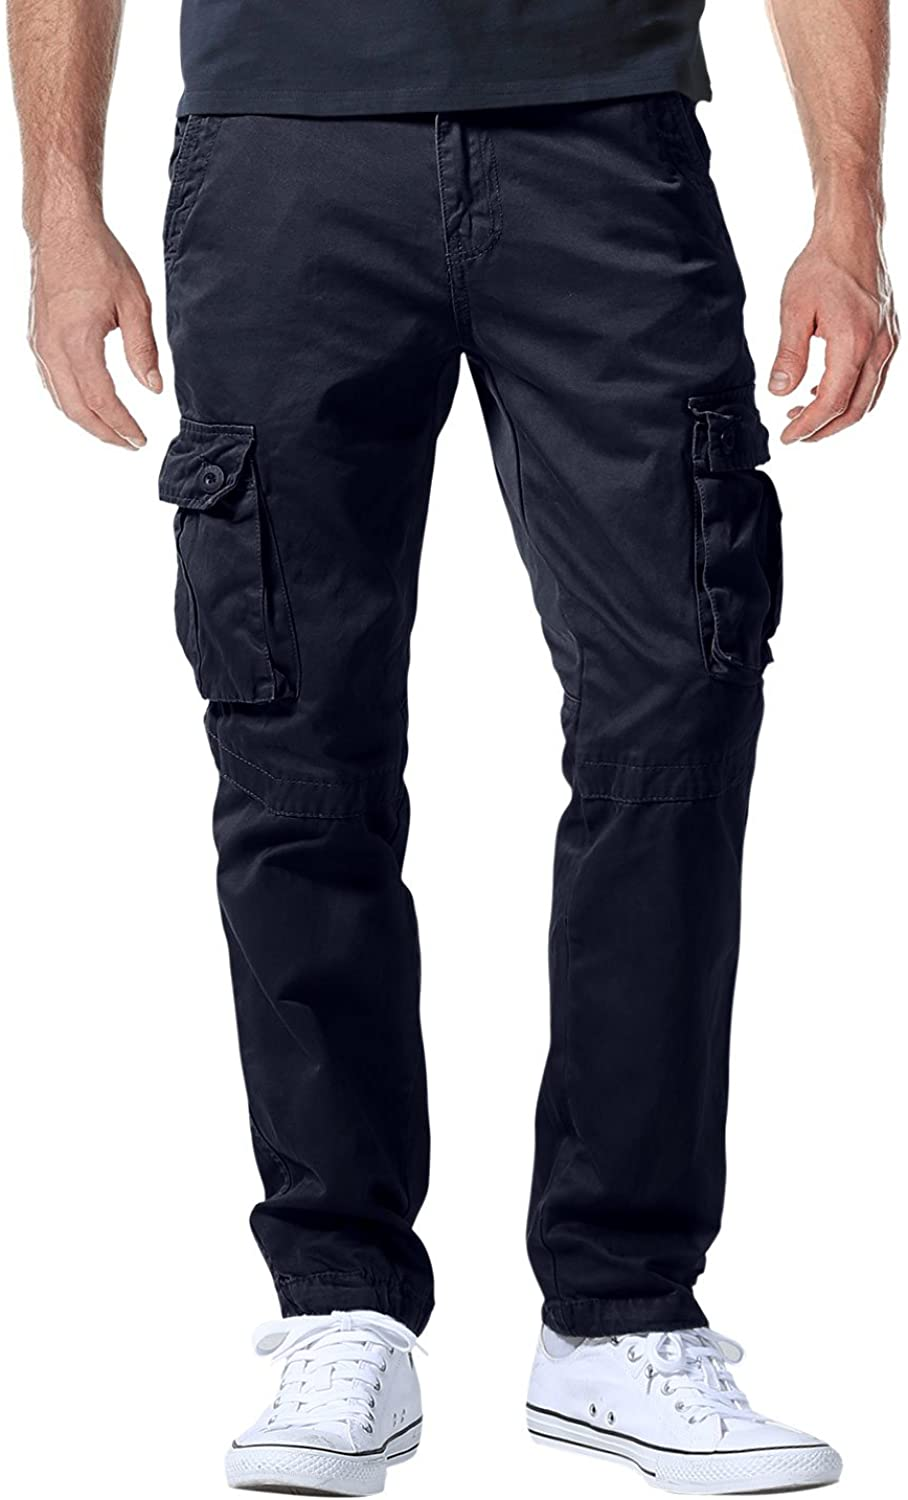 Match Mens Athletic-Fit Cargo Pants